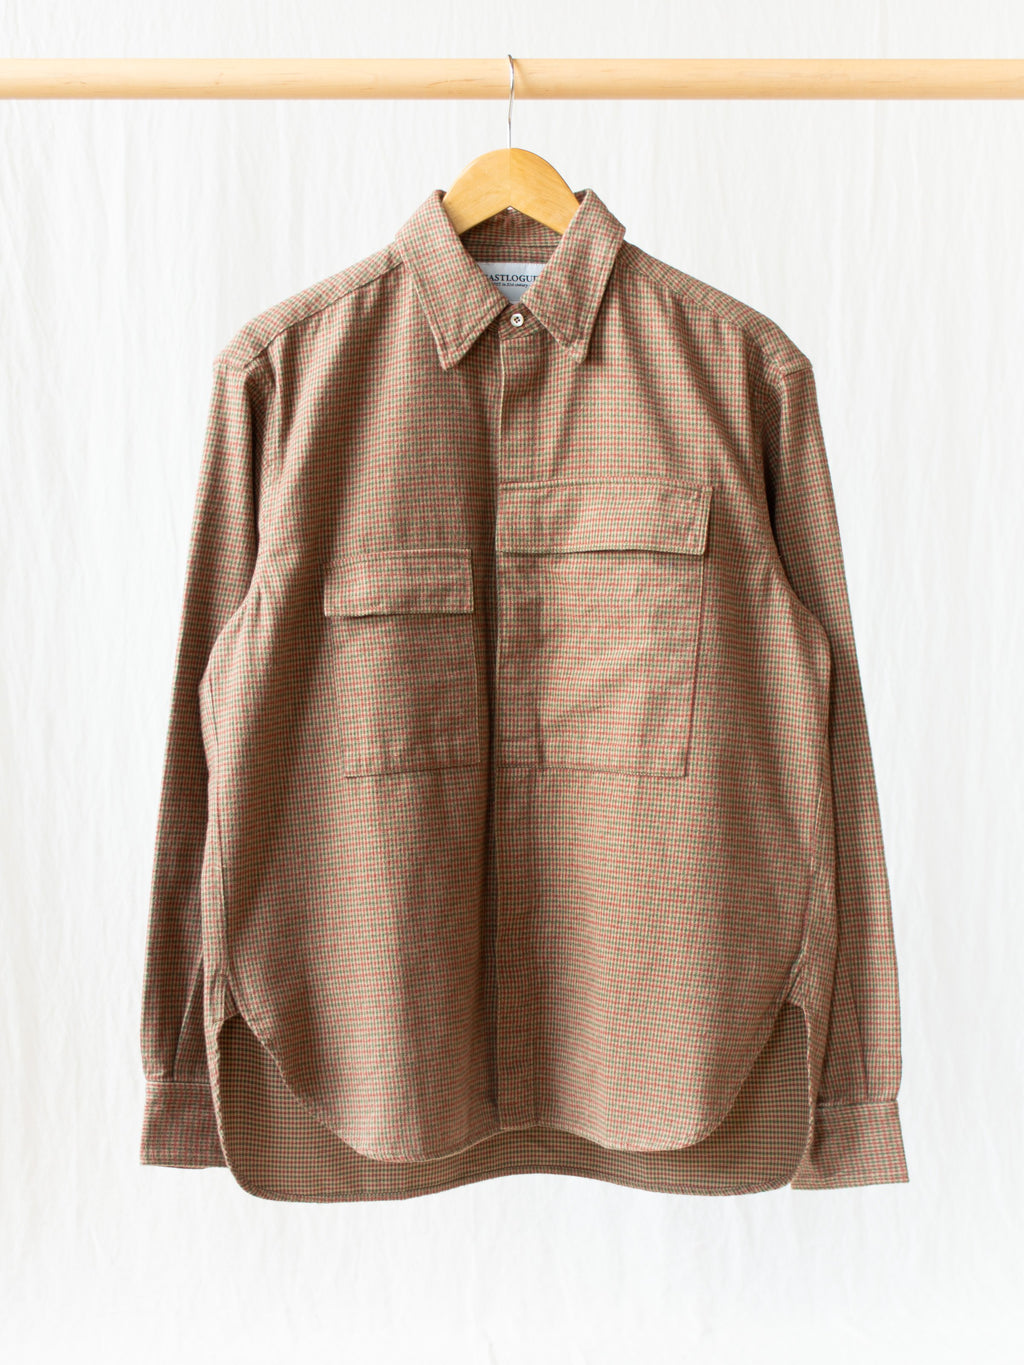 Namu Shop - Eastlogue CBA Shirt - Brown Gunclub Check